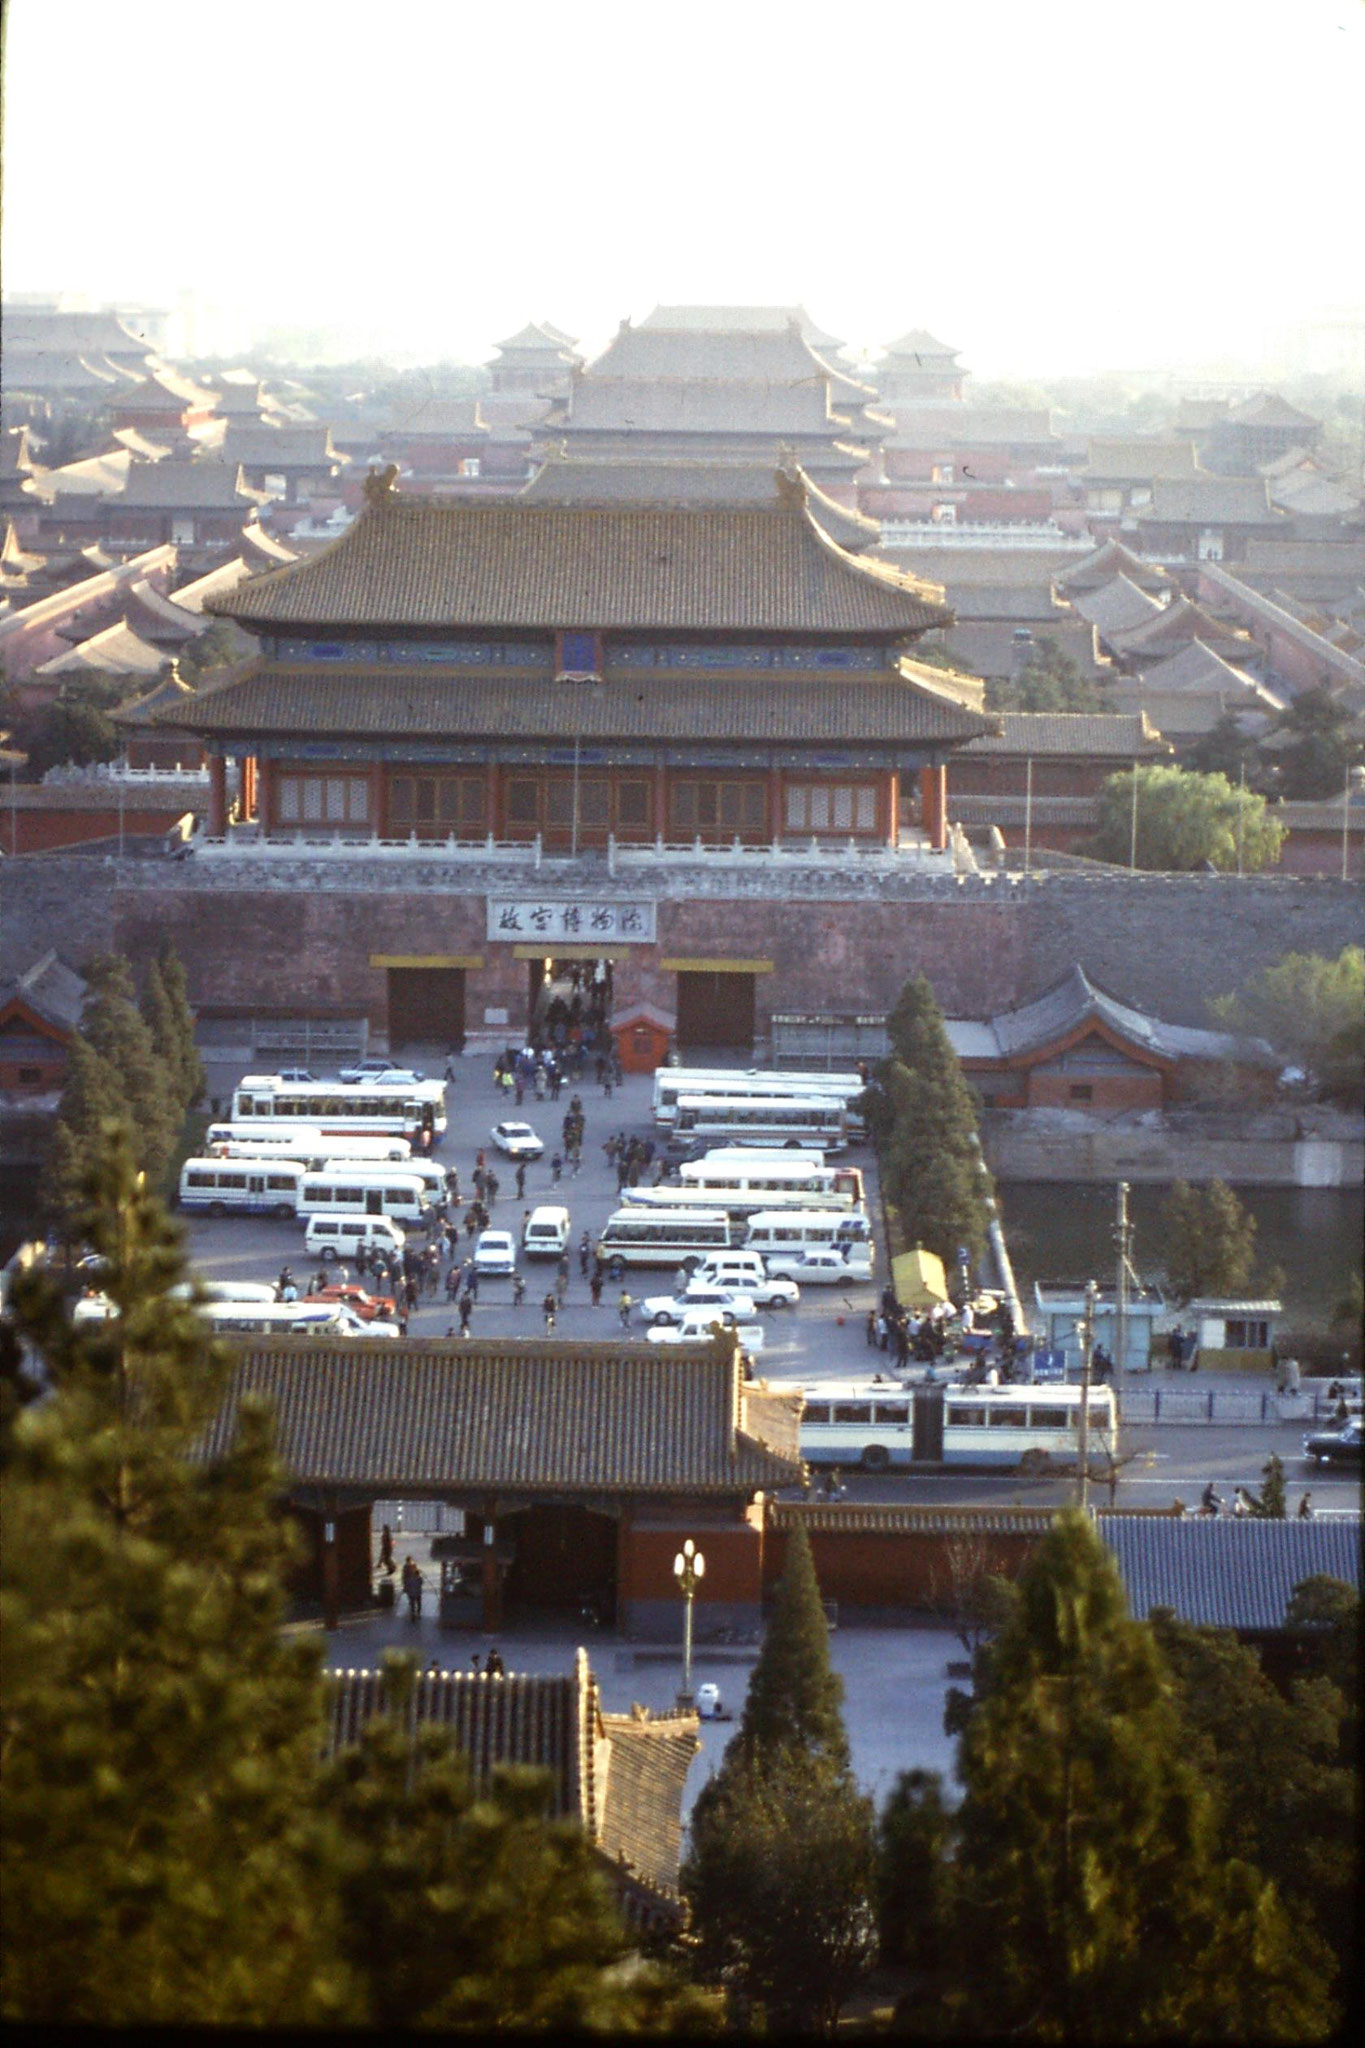 18/11/1988: 32: view of Forbidden City from Coal Hill